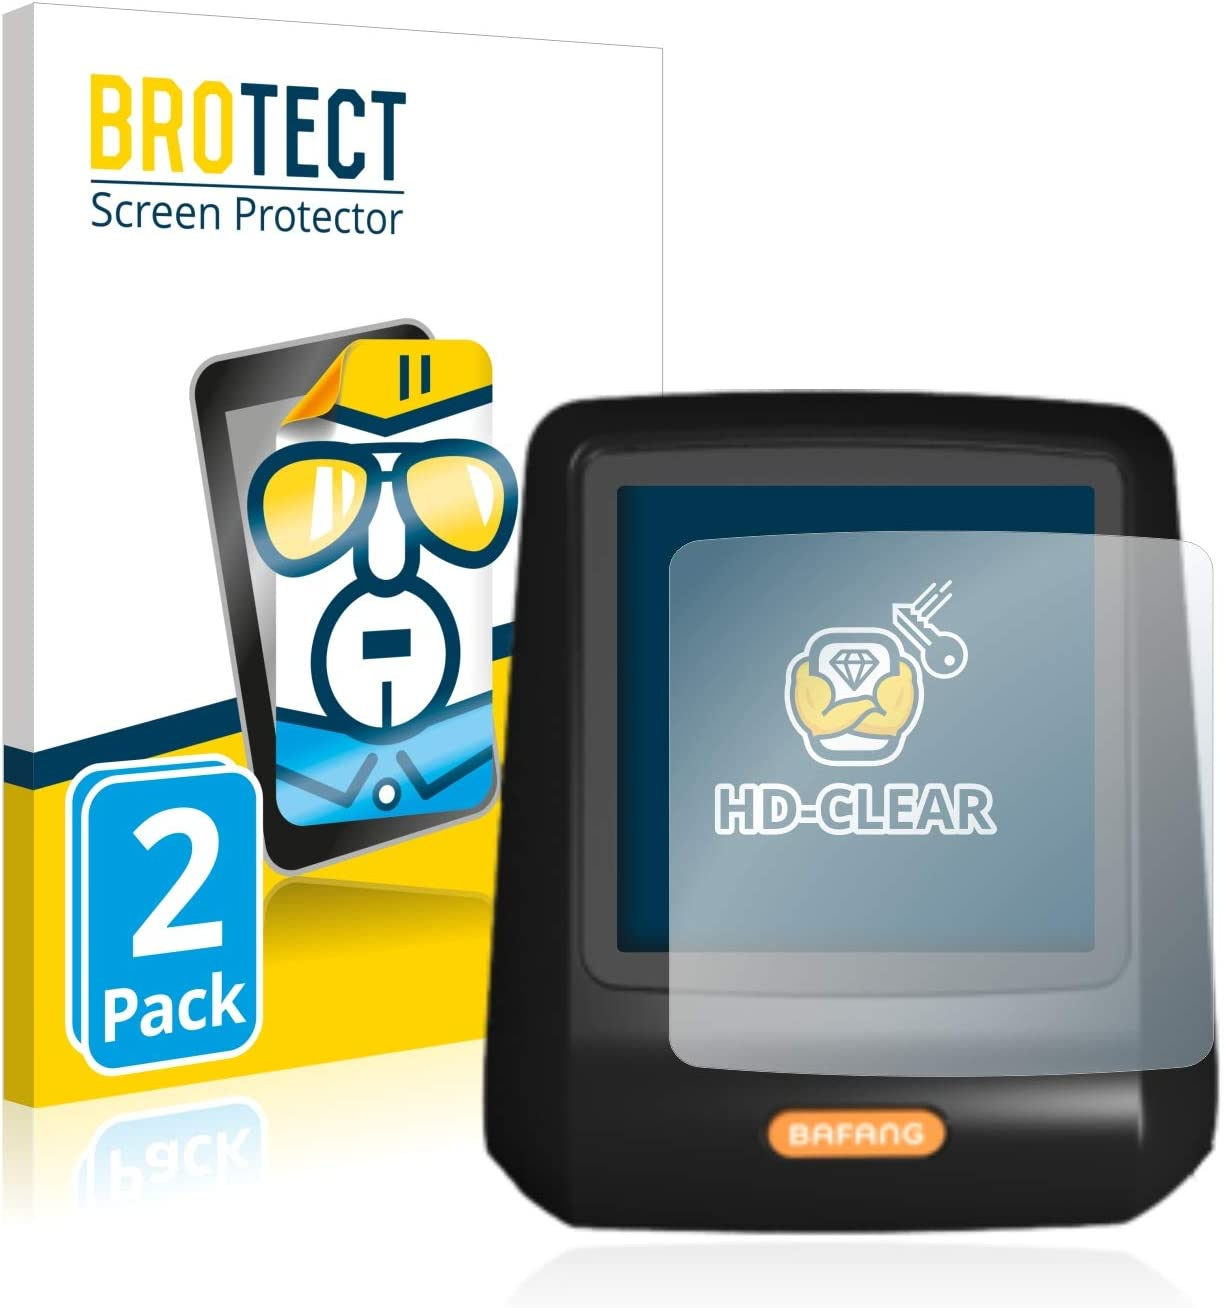 Dirt-Repellent Hard-Coated Crystal-Clear BROTECT 2X HD-Clear Screen Protector for Bafang DP C07